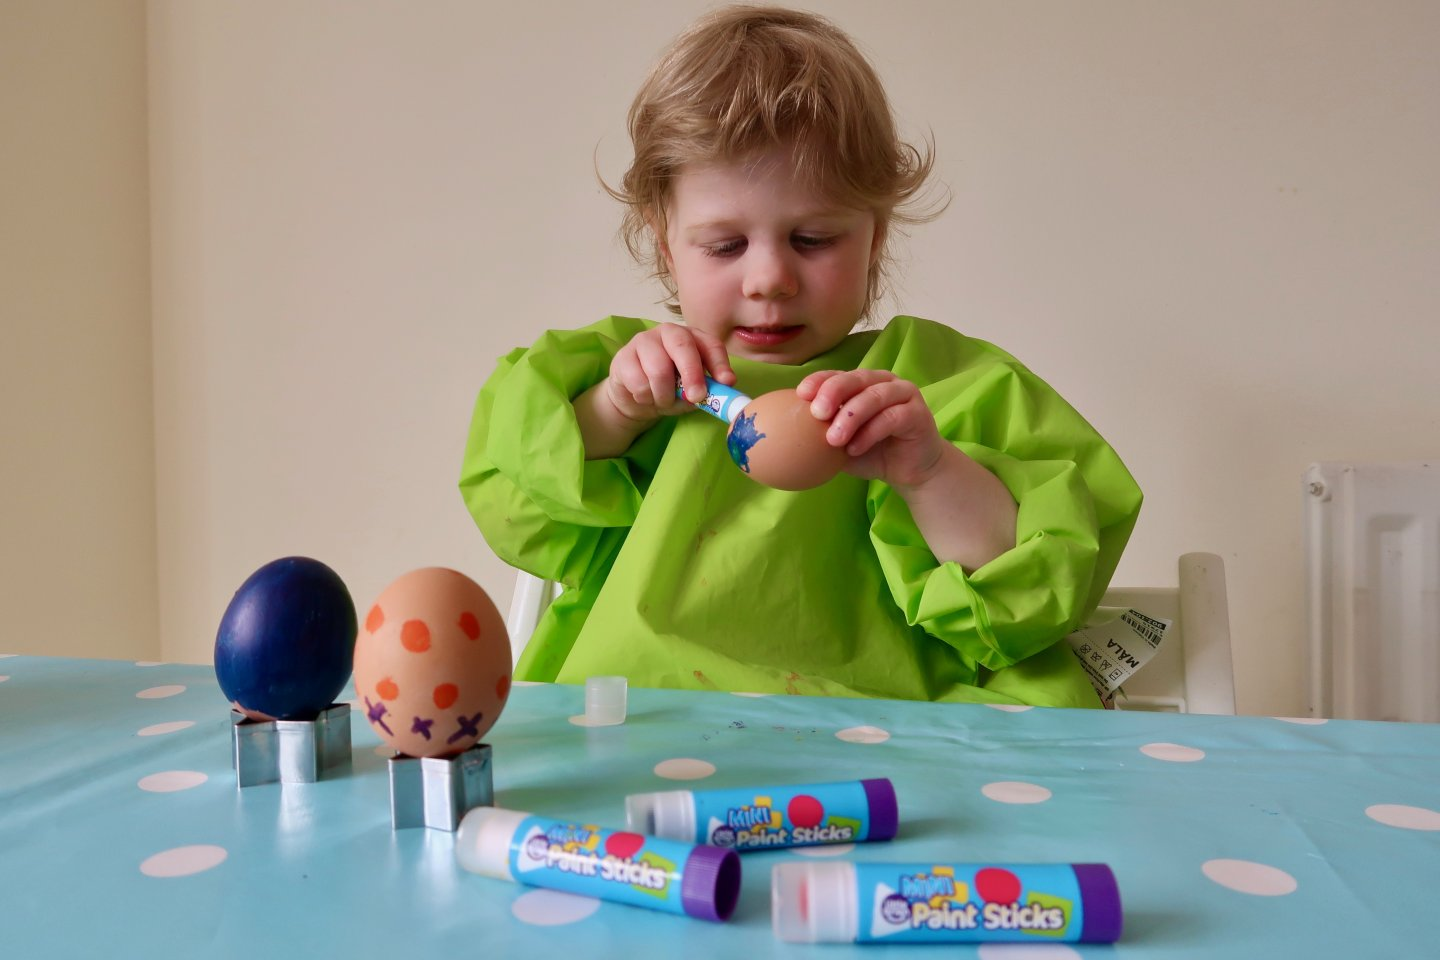 Using paint sticks to decorate boiled eggs for Easter.